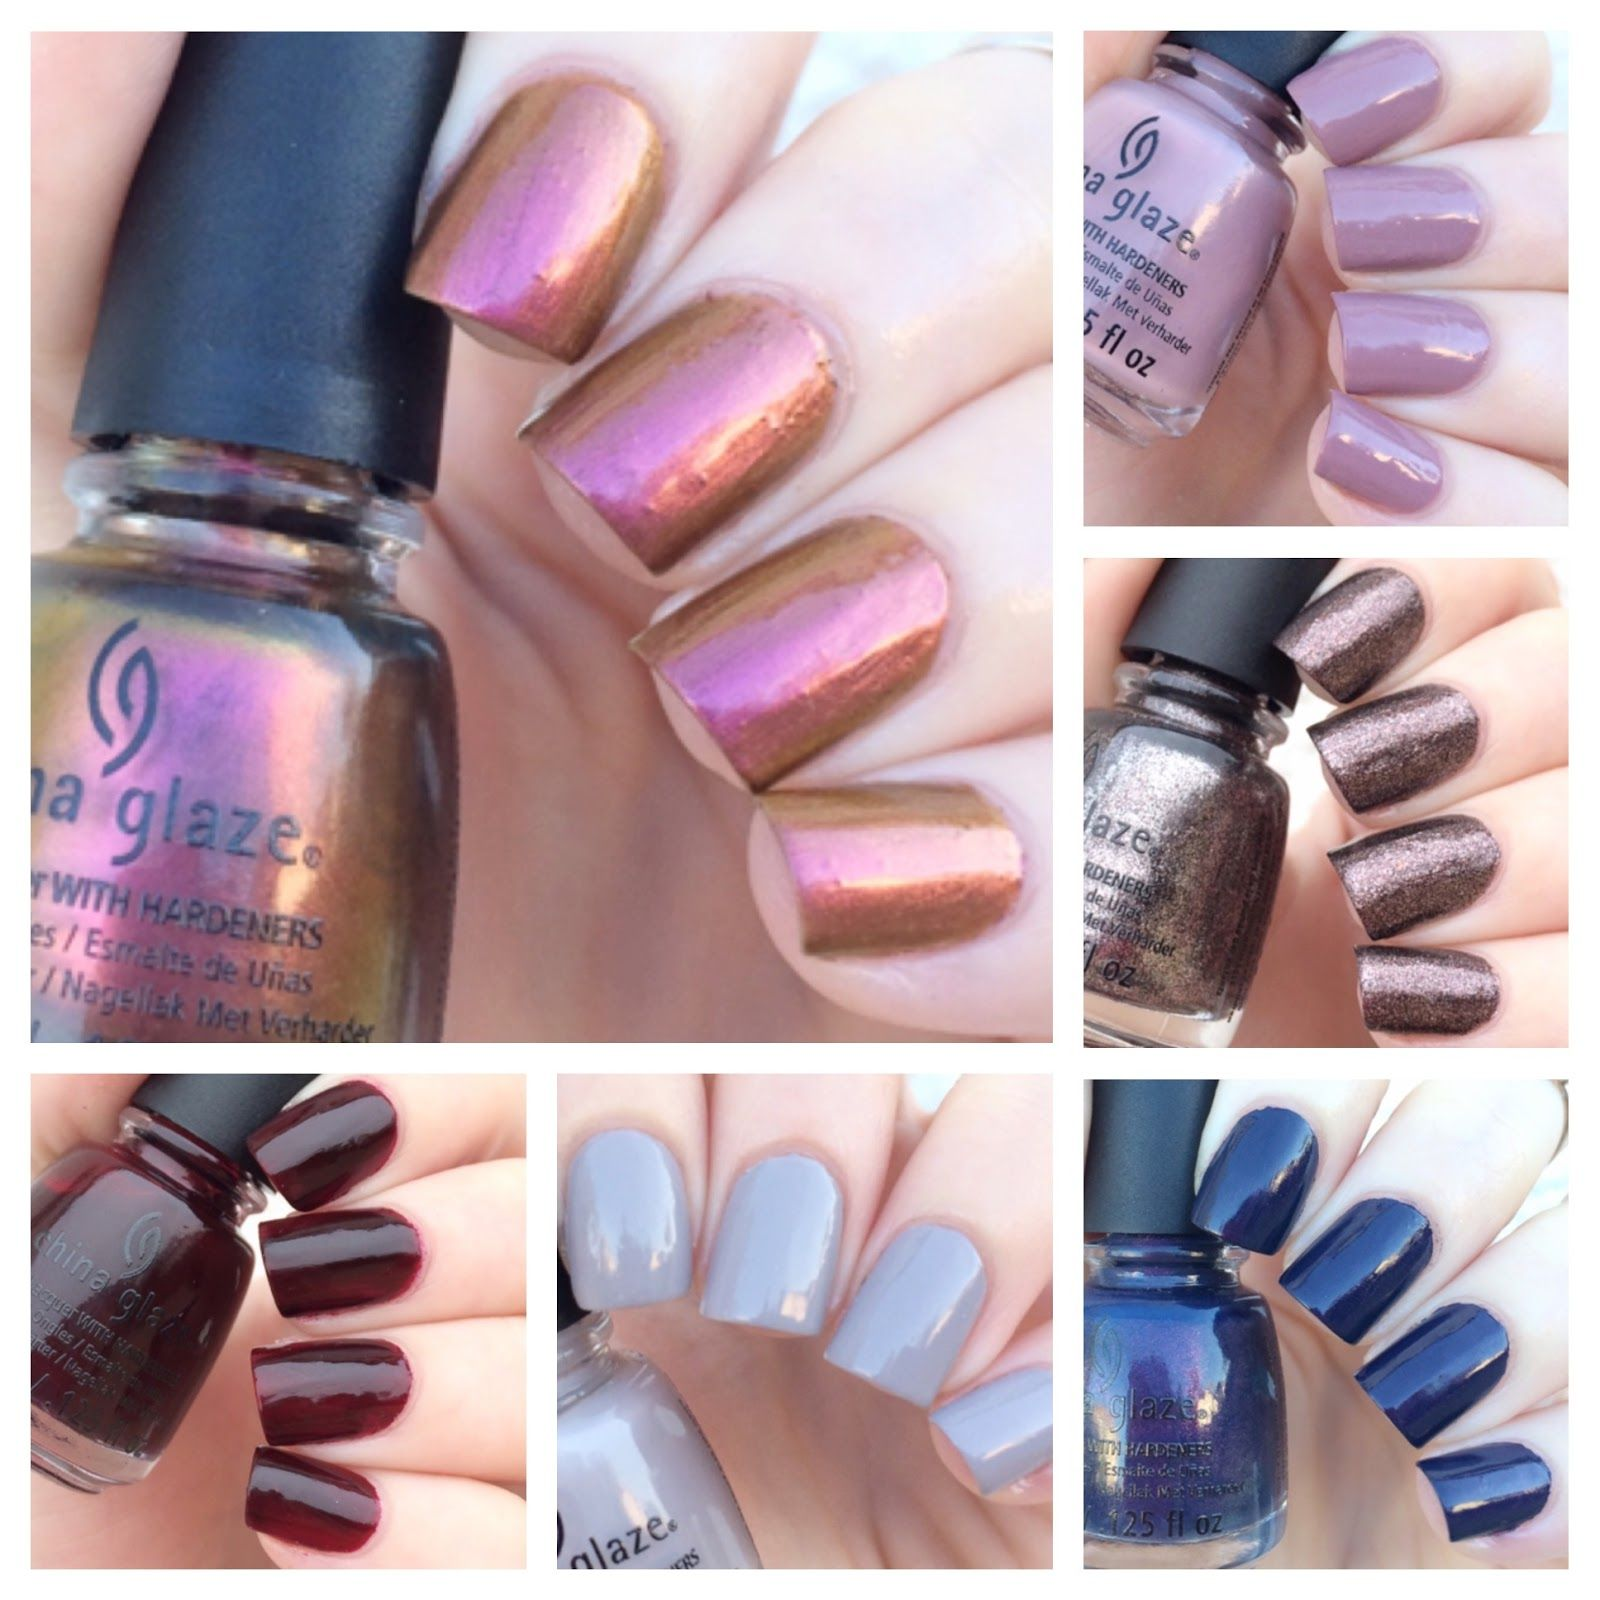 cat eyes & skinny jeans: China Glaze Happy Campers Micro Mini Set Swatches + Review